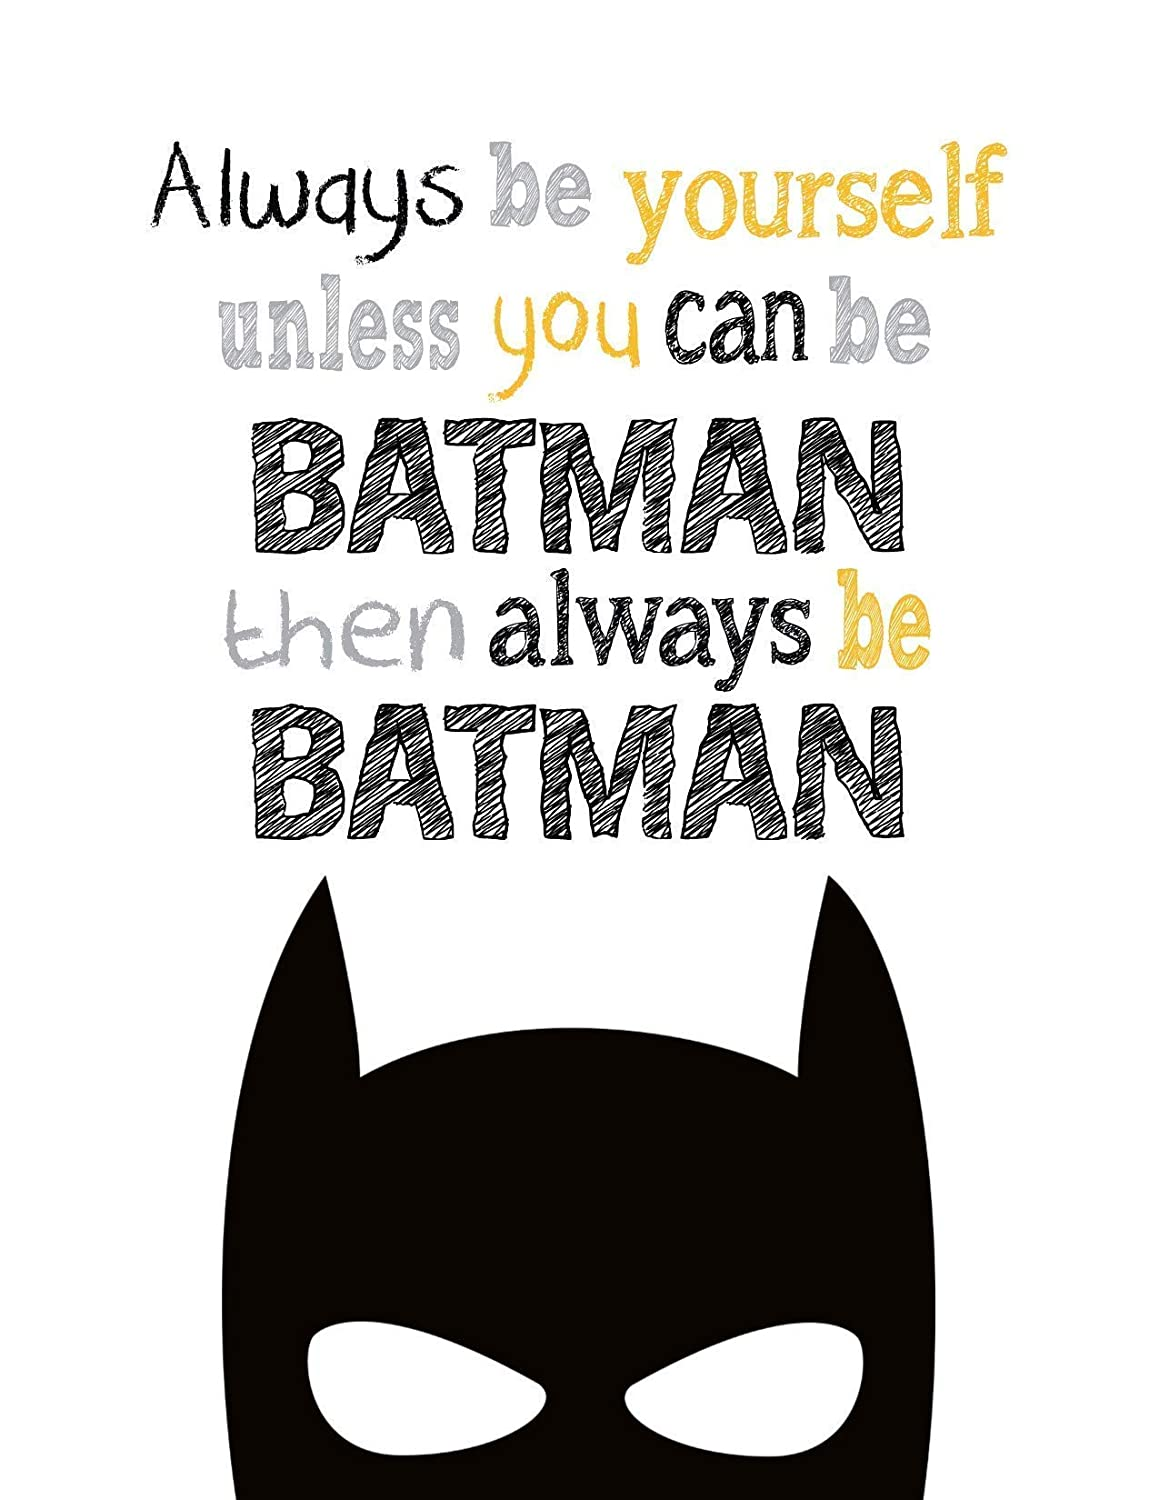 African American Personalized Superhero Motivational Nursery Decor Set of 3 Prints Dream Big Little Batman